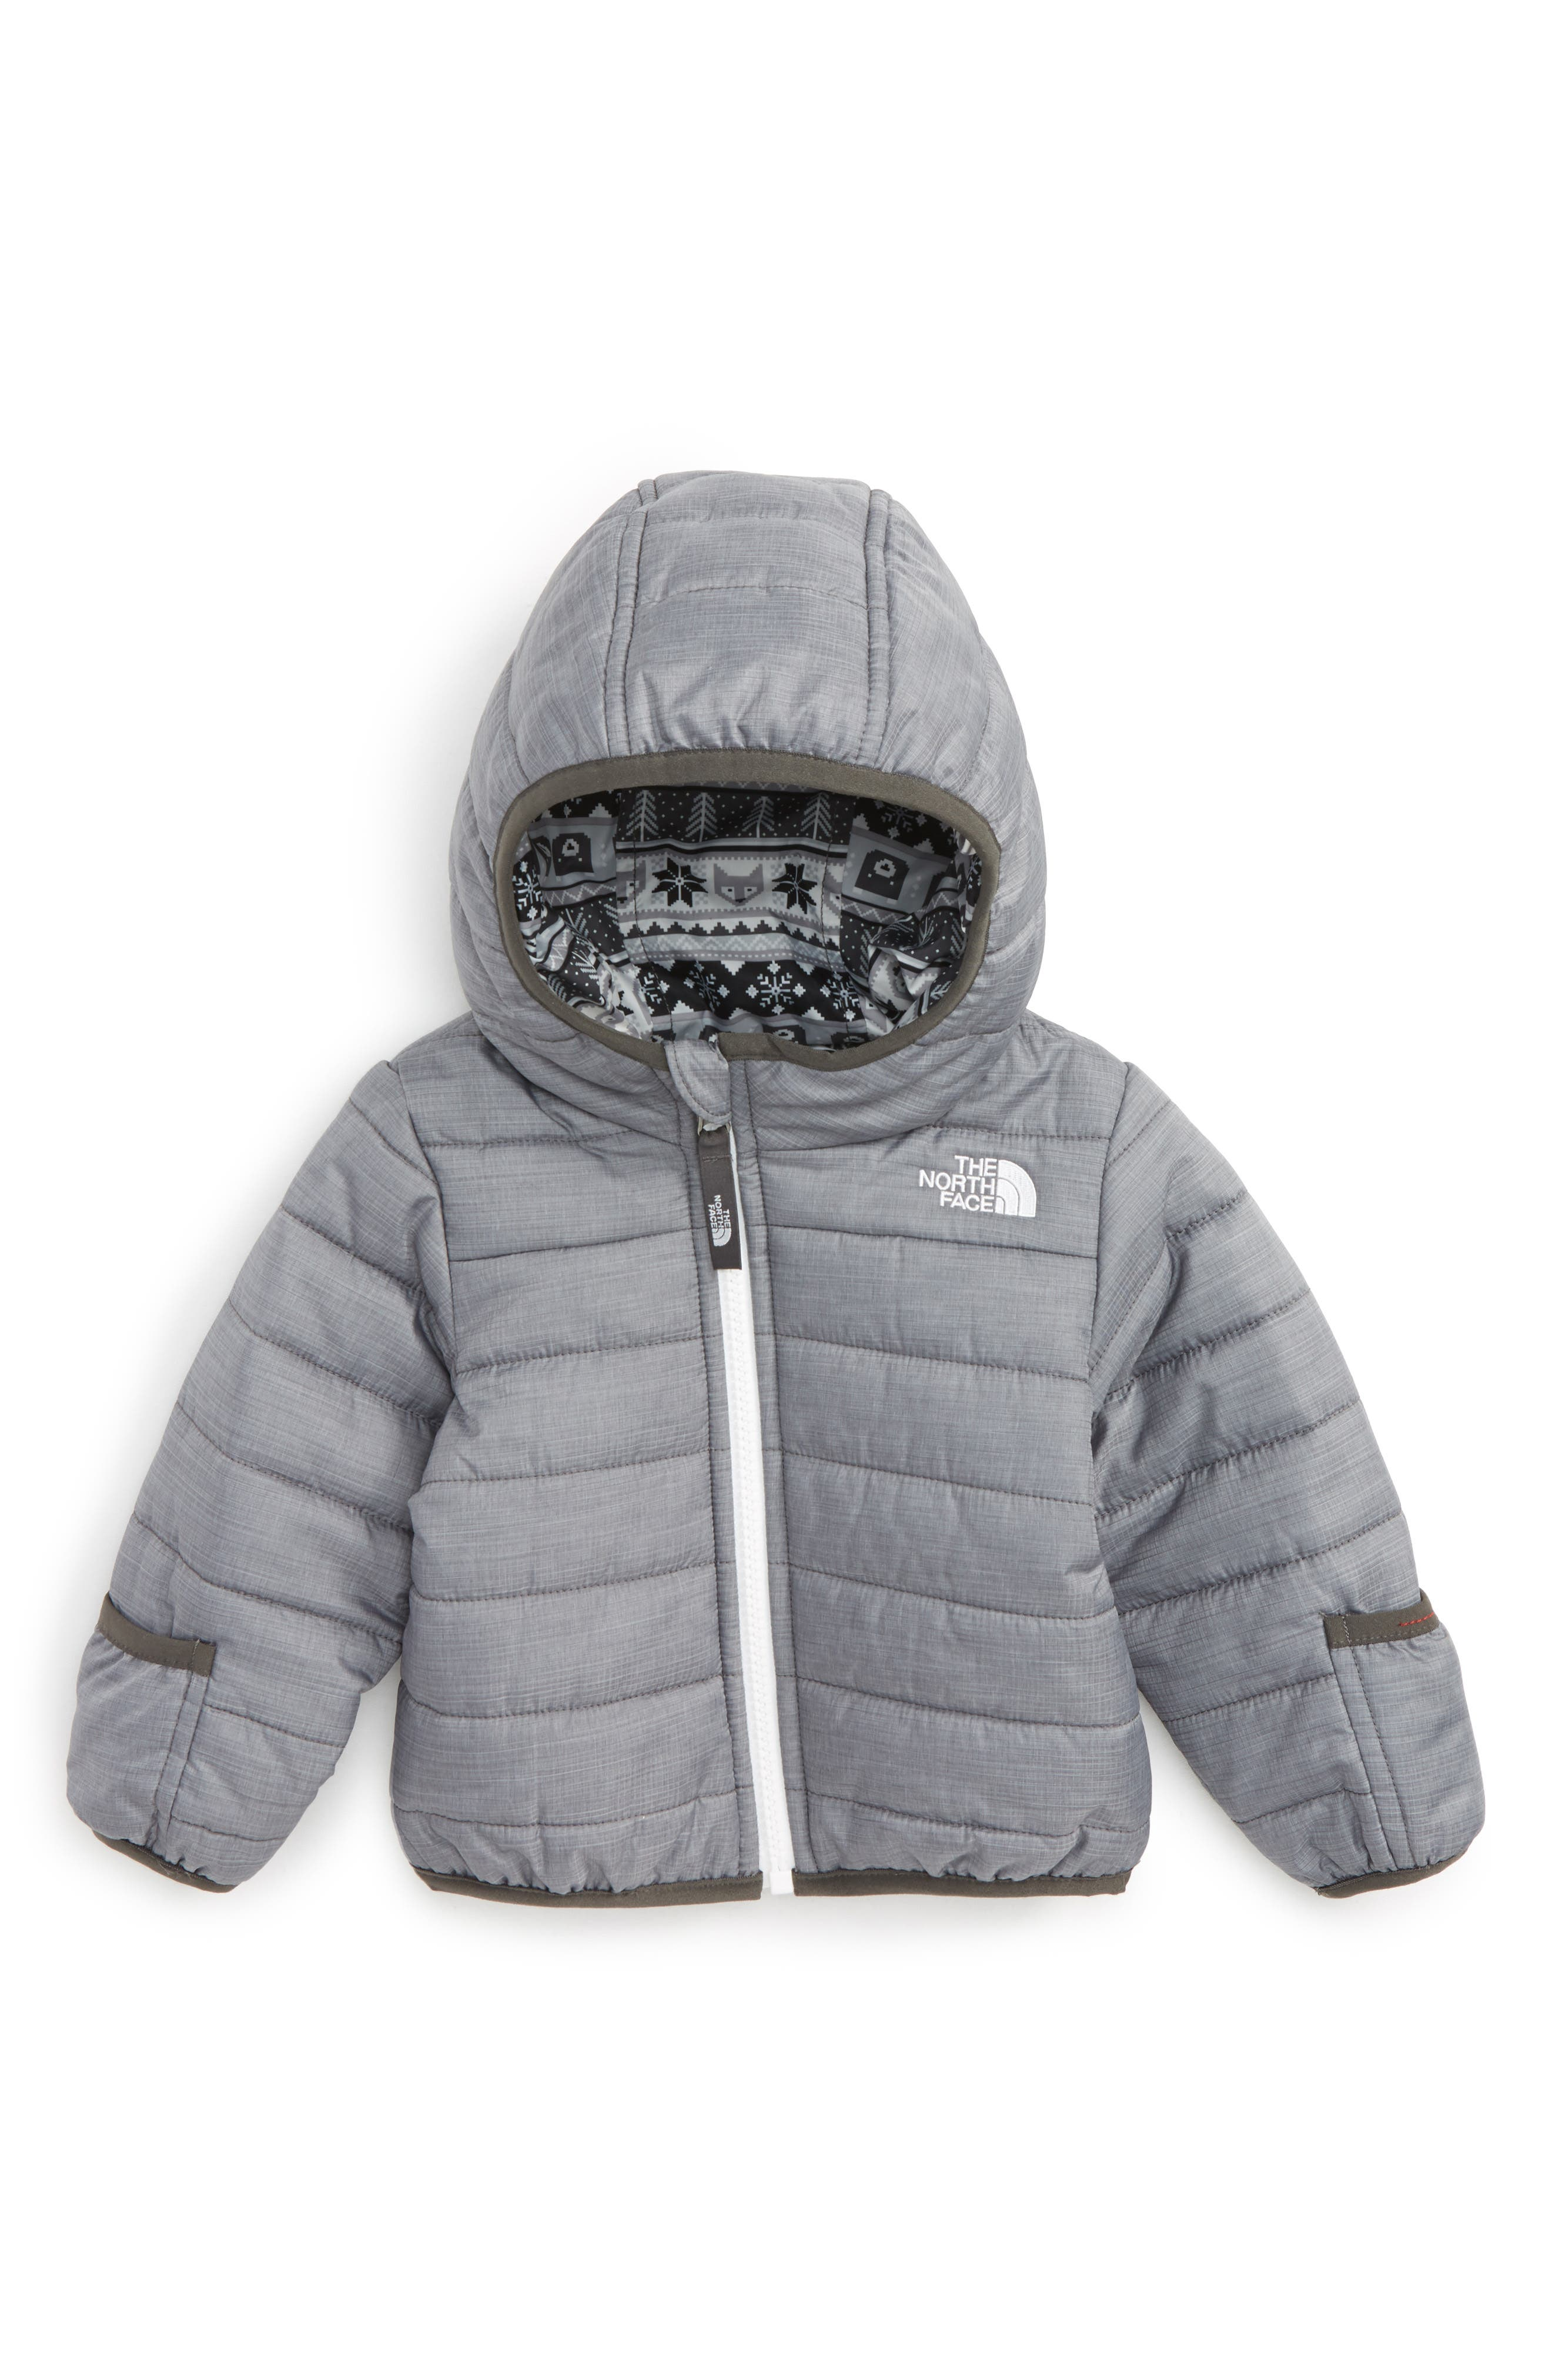 'Perrito' Reversible Water Repellent Hooded Jacket,                             Main thumbnail 1, color,                             Tnf Medium Grey Heather